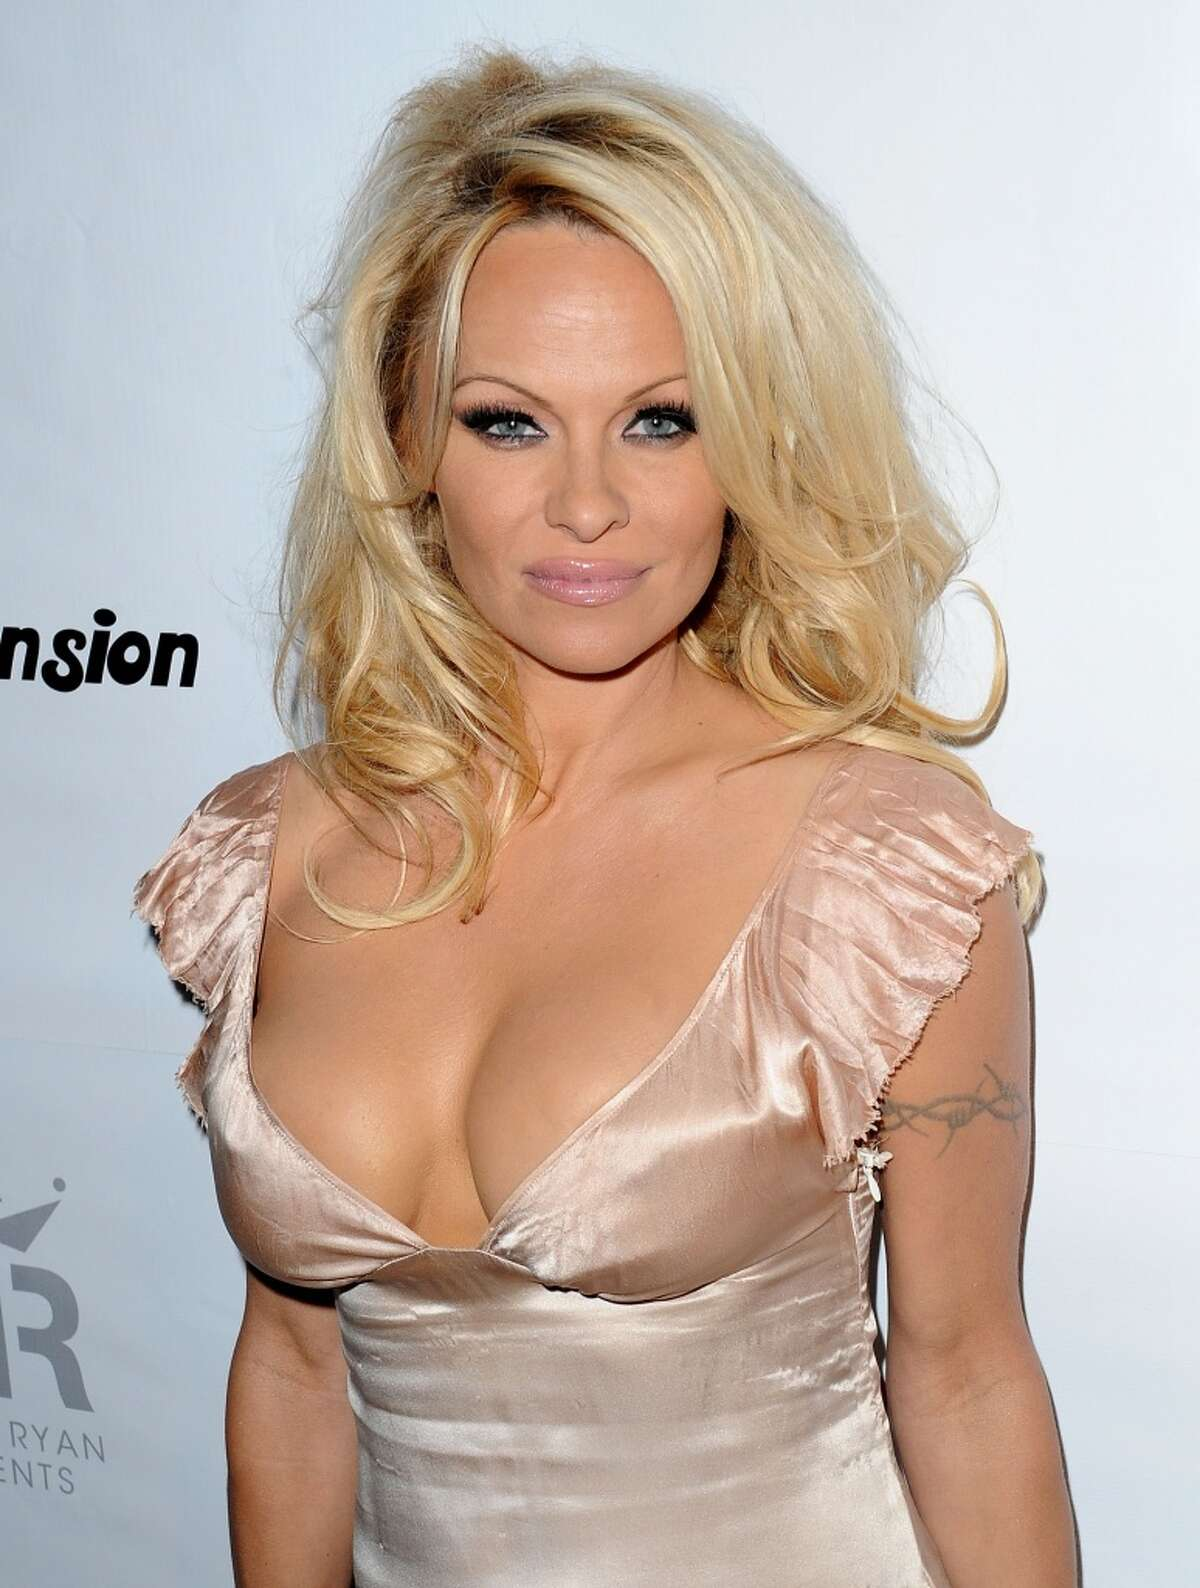 Pamela Anderson at The Playboy Mansion on February 12, 2012 in Beverly Hills, California.